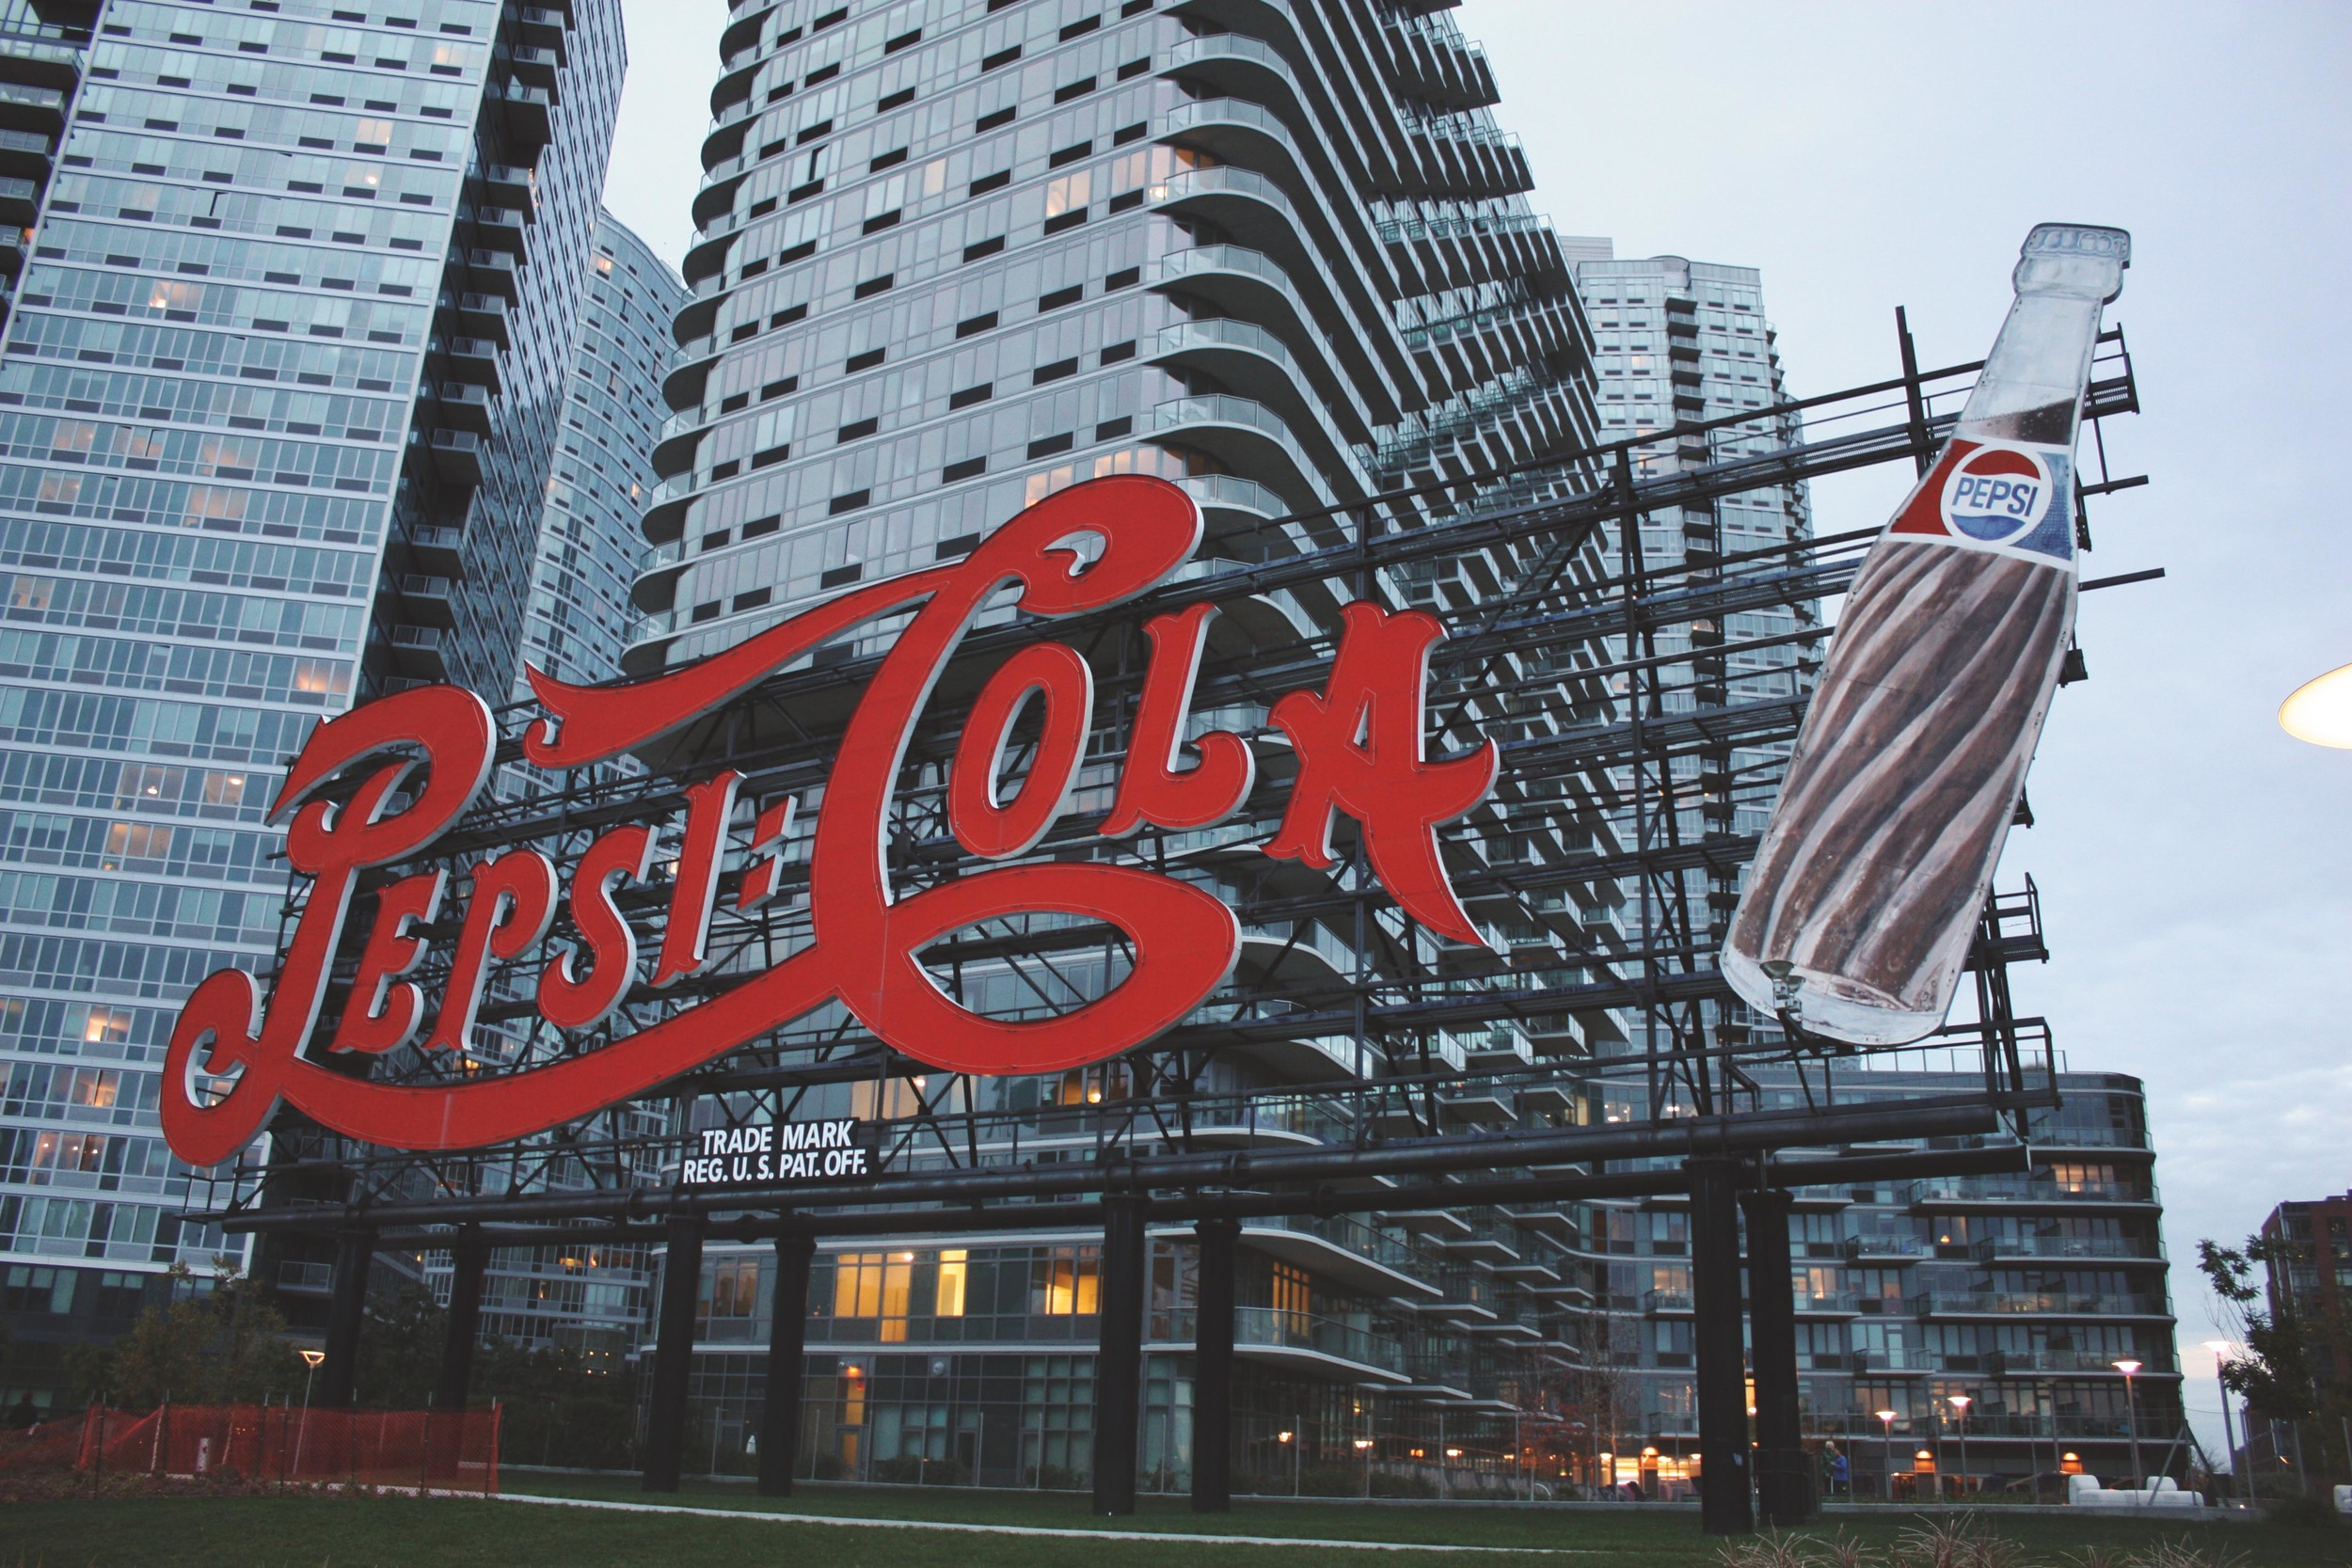 Classic Queens . This preserved Pepsi-Cola sign was originally constructed on top of a Pepsi bottling plant back in 1936 .